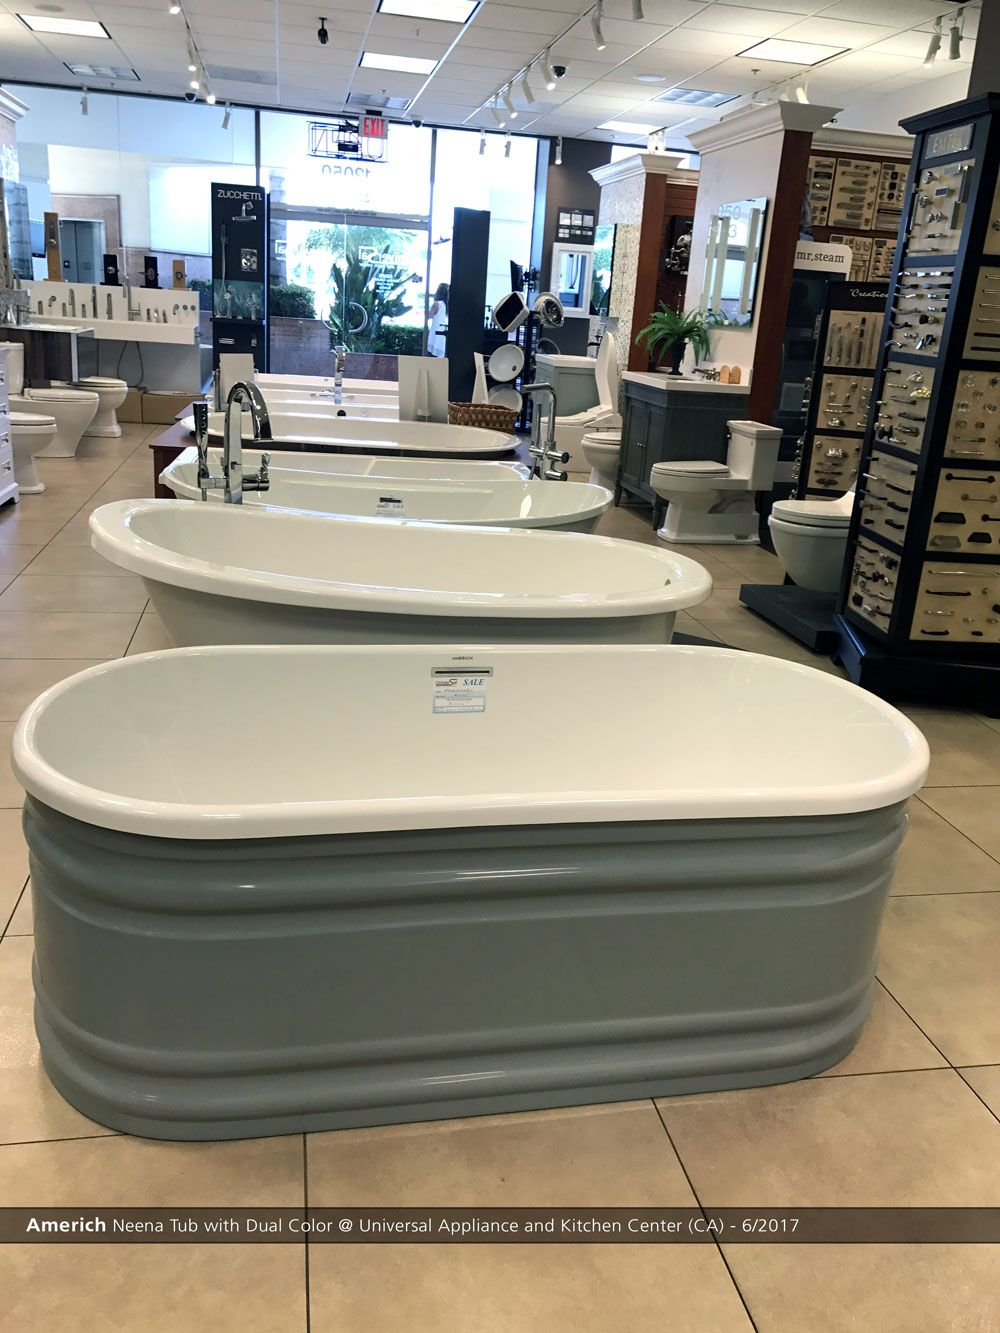 Americh Neena Tub With Dual Color @ Universal Appliance And ...